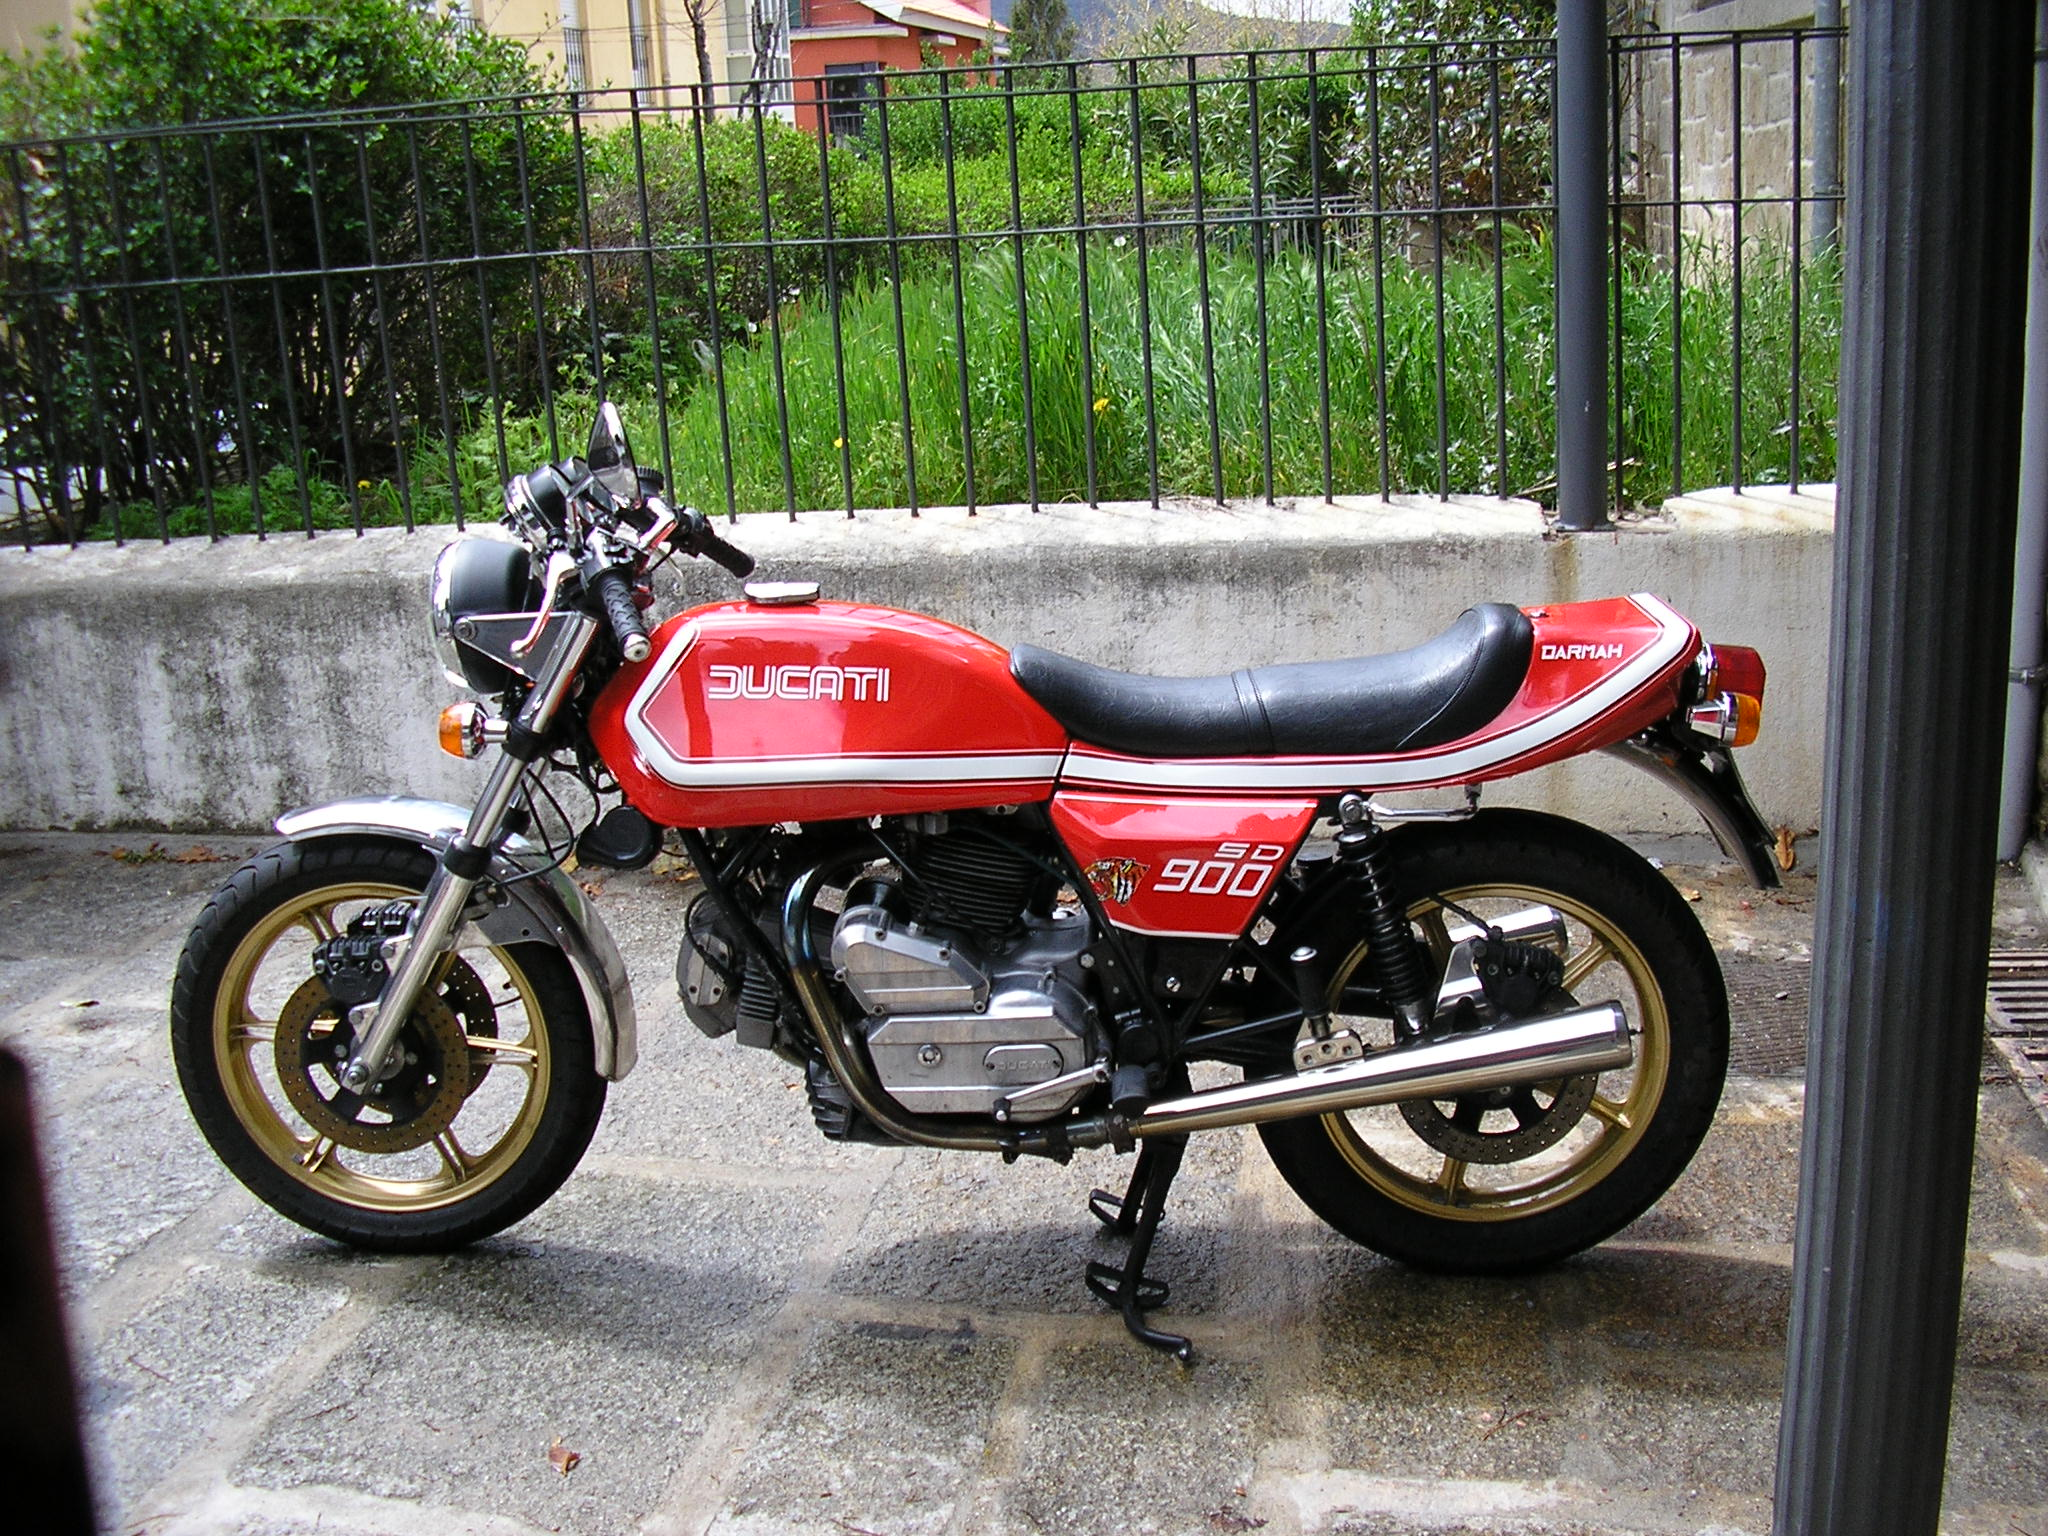 Ducati 900 SD Darmah 1979 wallpapers #10550